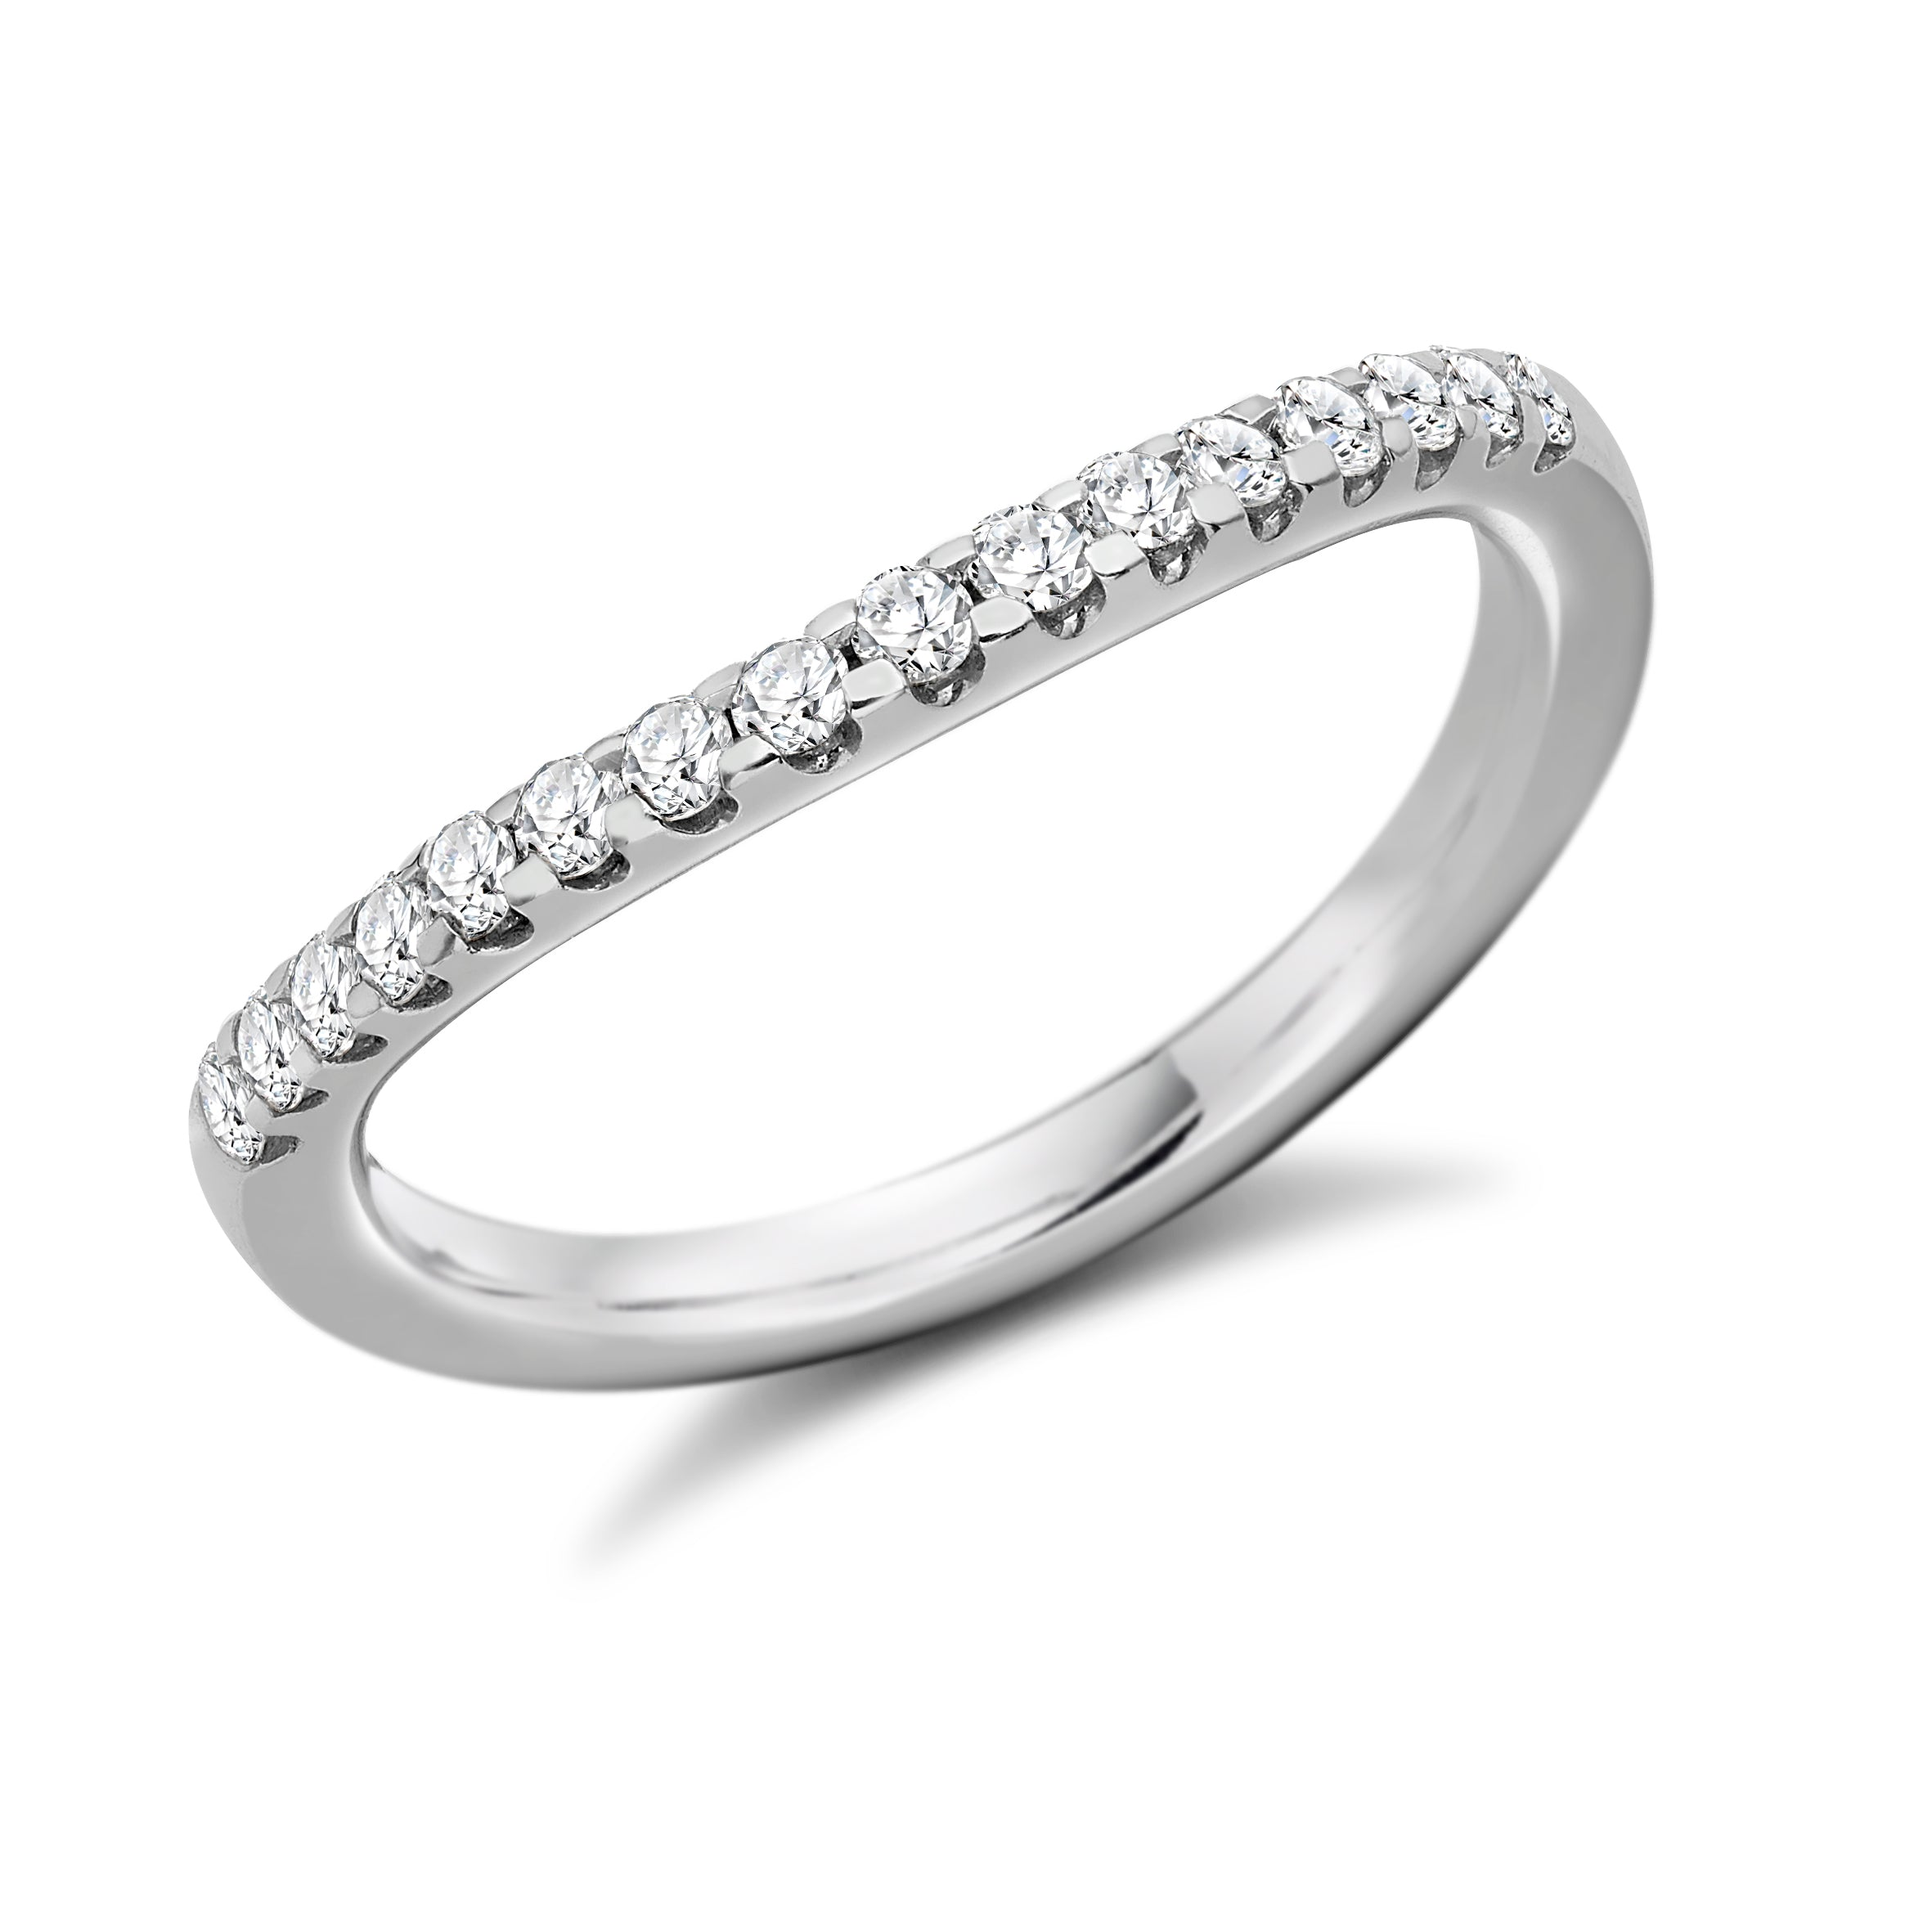 18ct White Gold 0.3ct Round Brilliant Cut Diamonds Curved Shaped Vintage Wedding Ring